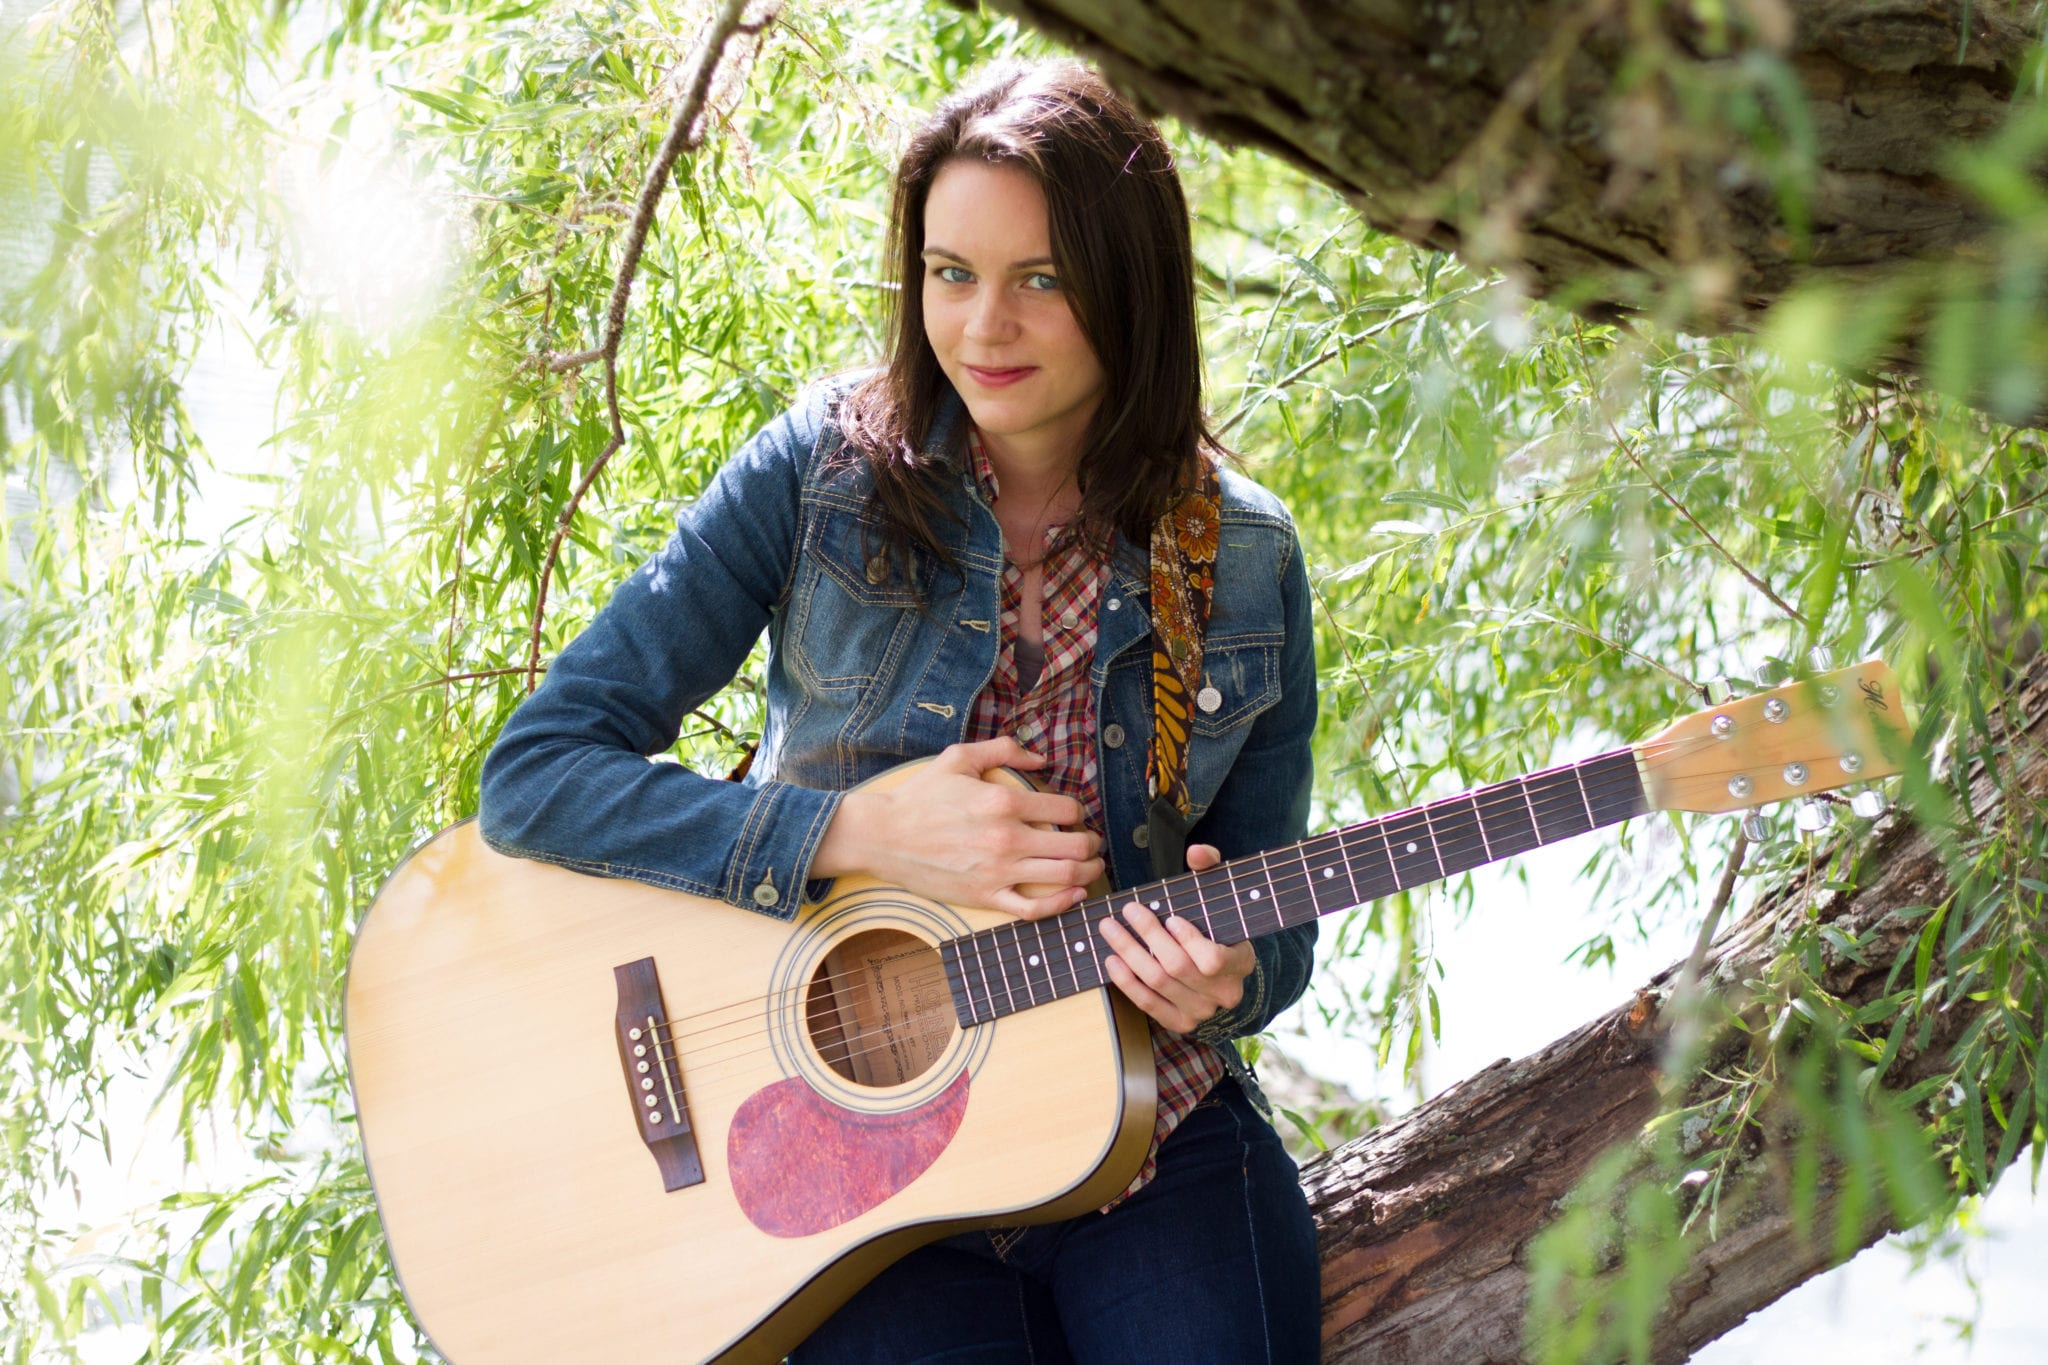 amy goloby left unsaid photo shoot sitting in willow tree